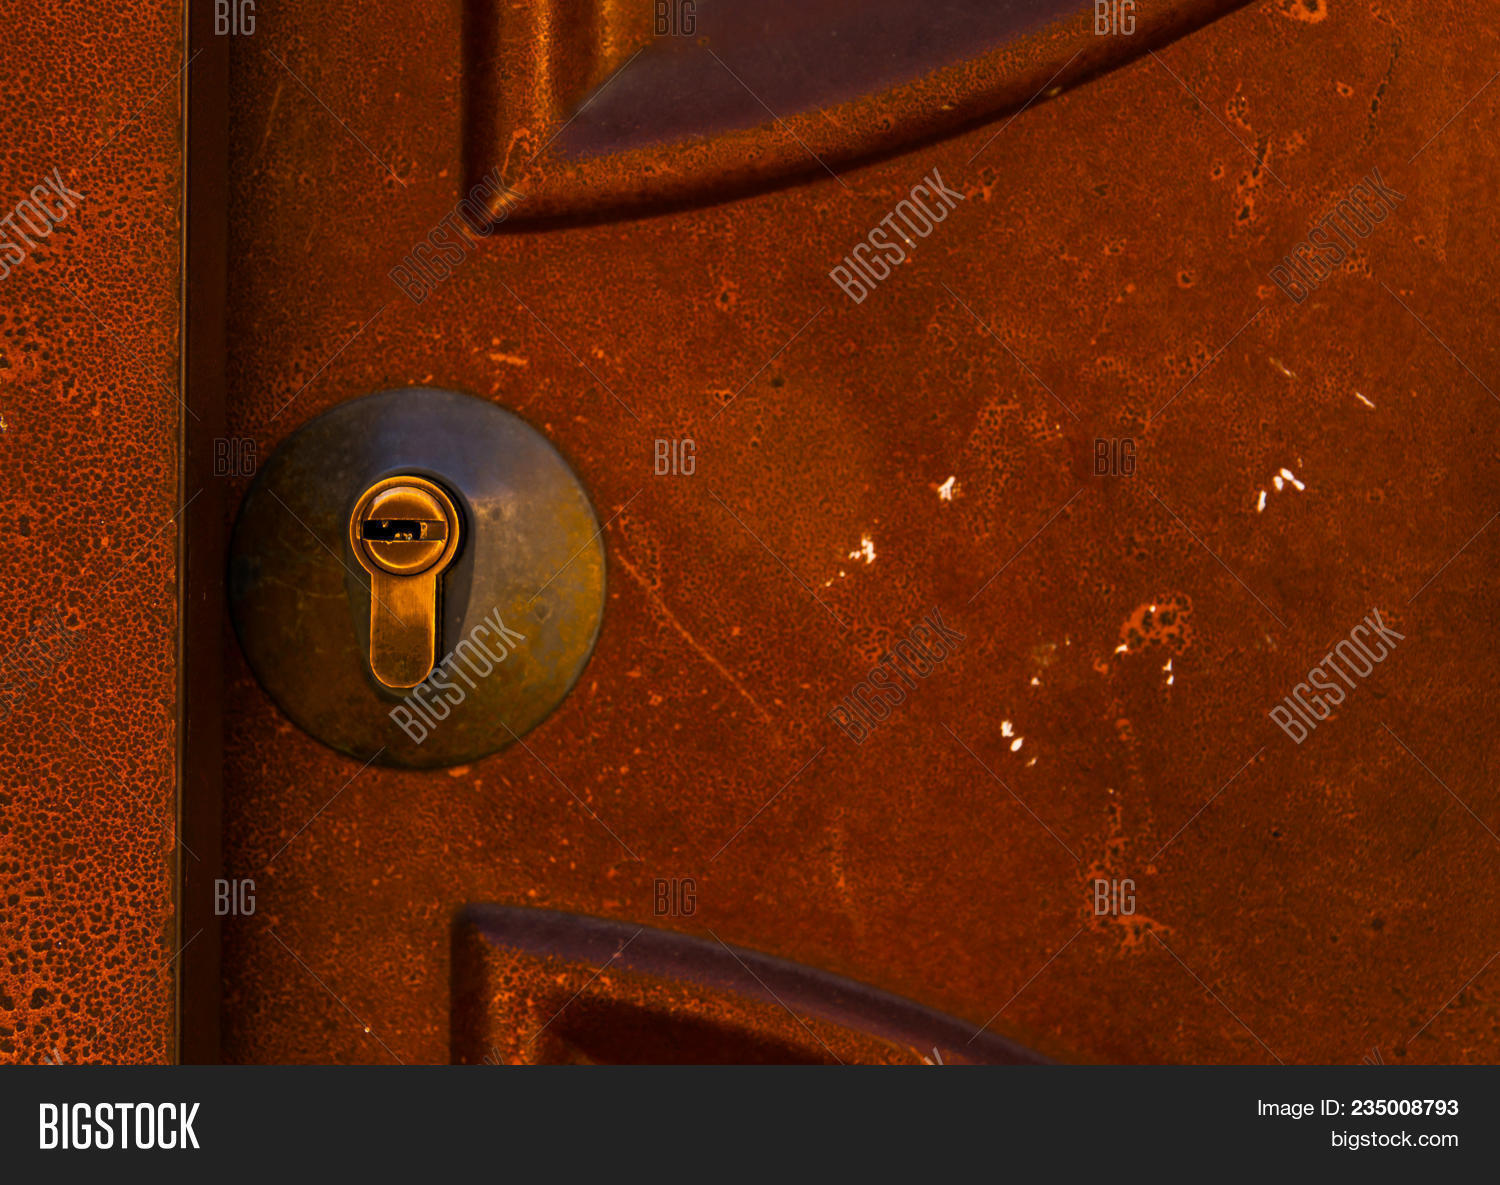 access,aged,antique,background,close,closed,closeup,concept,corrosion,cylinder,decoration,design,detail,door,enter,entrance,exit,exterior,gate,guard,house,insert,iron,keep,key,lock,metal,metallic,old,open,paint,privacy,private,protect,protection,rough,rust,rusty,safe,safety,secure,security,shut,steel,symbol,texture,unlock,vintage,wooden